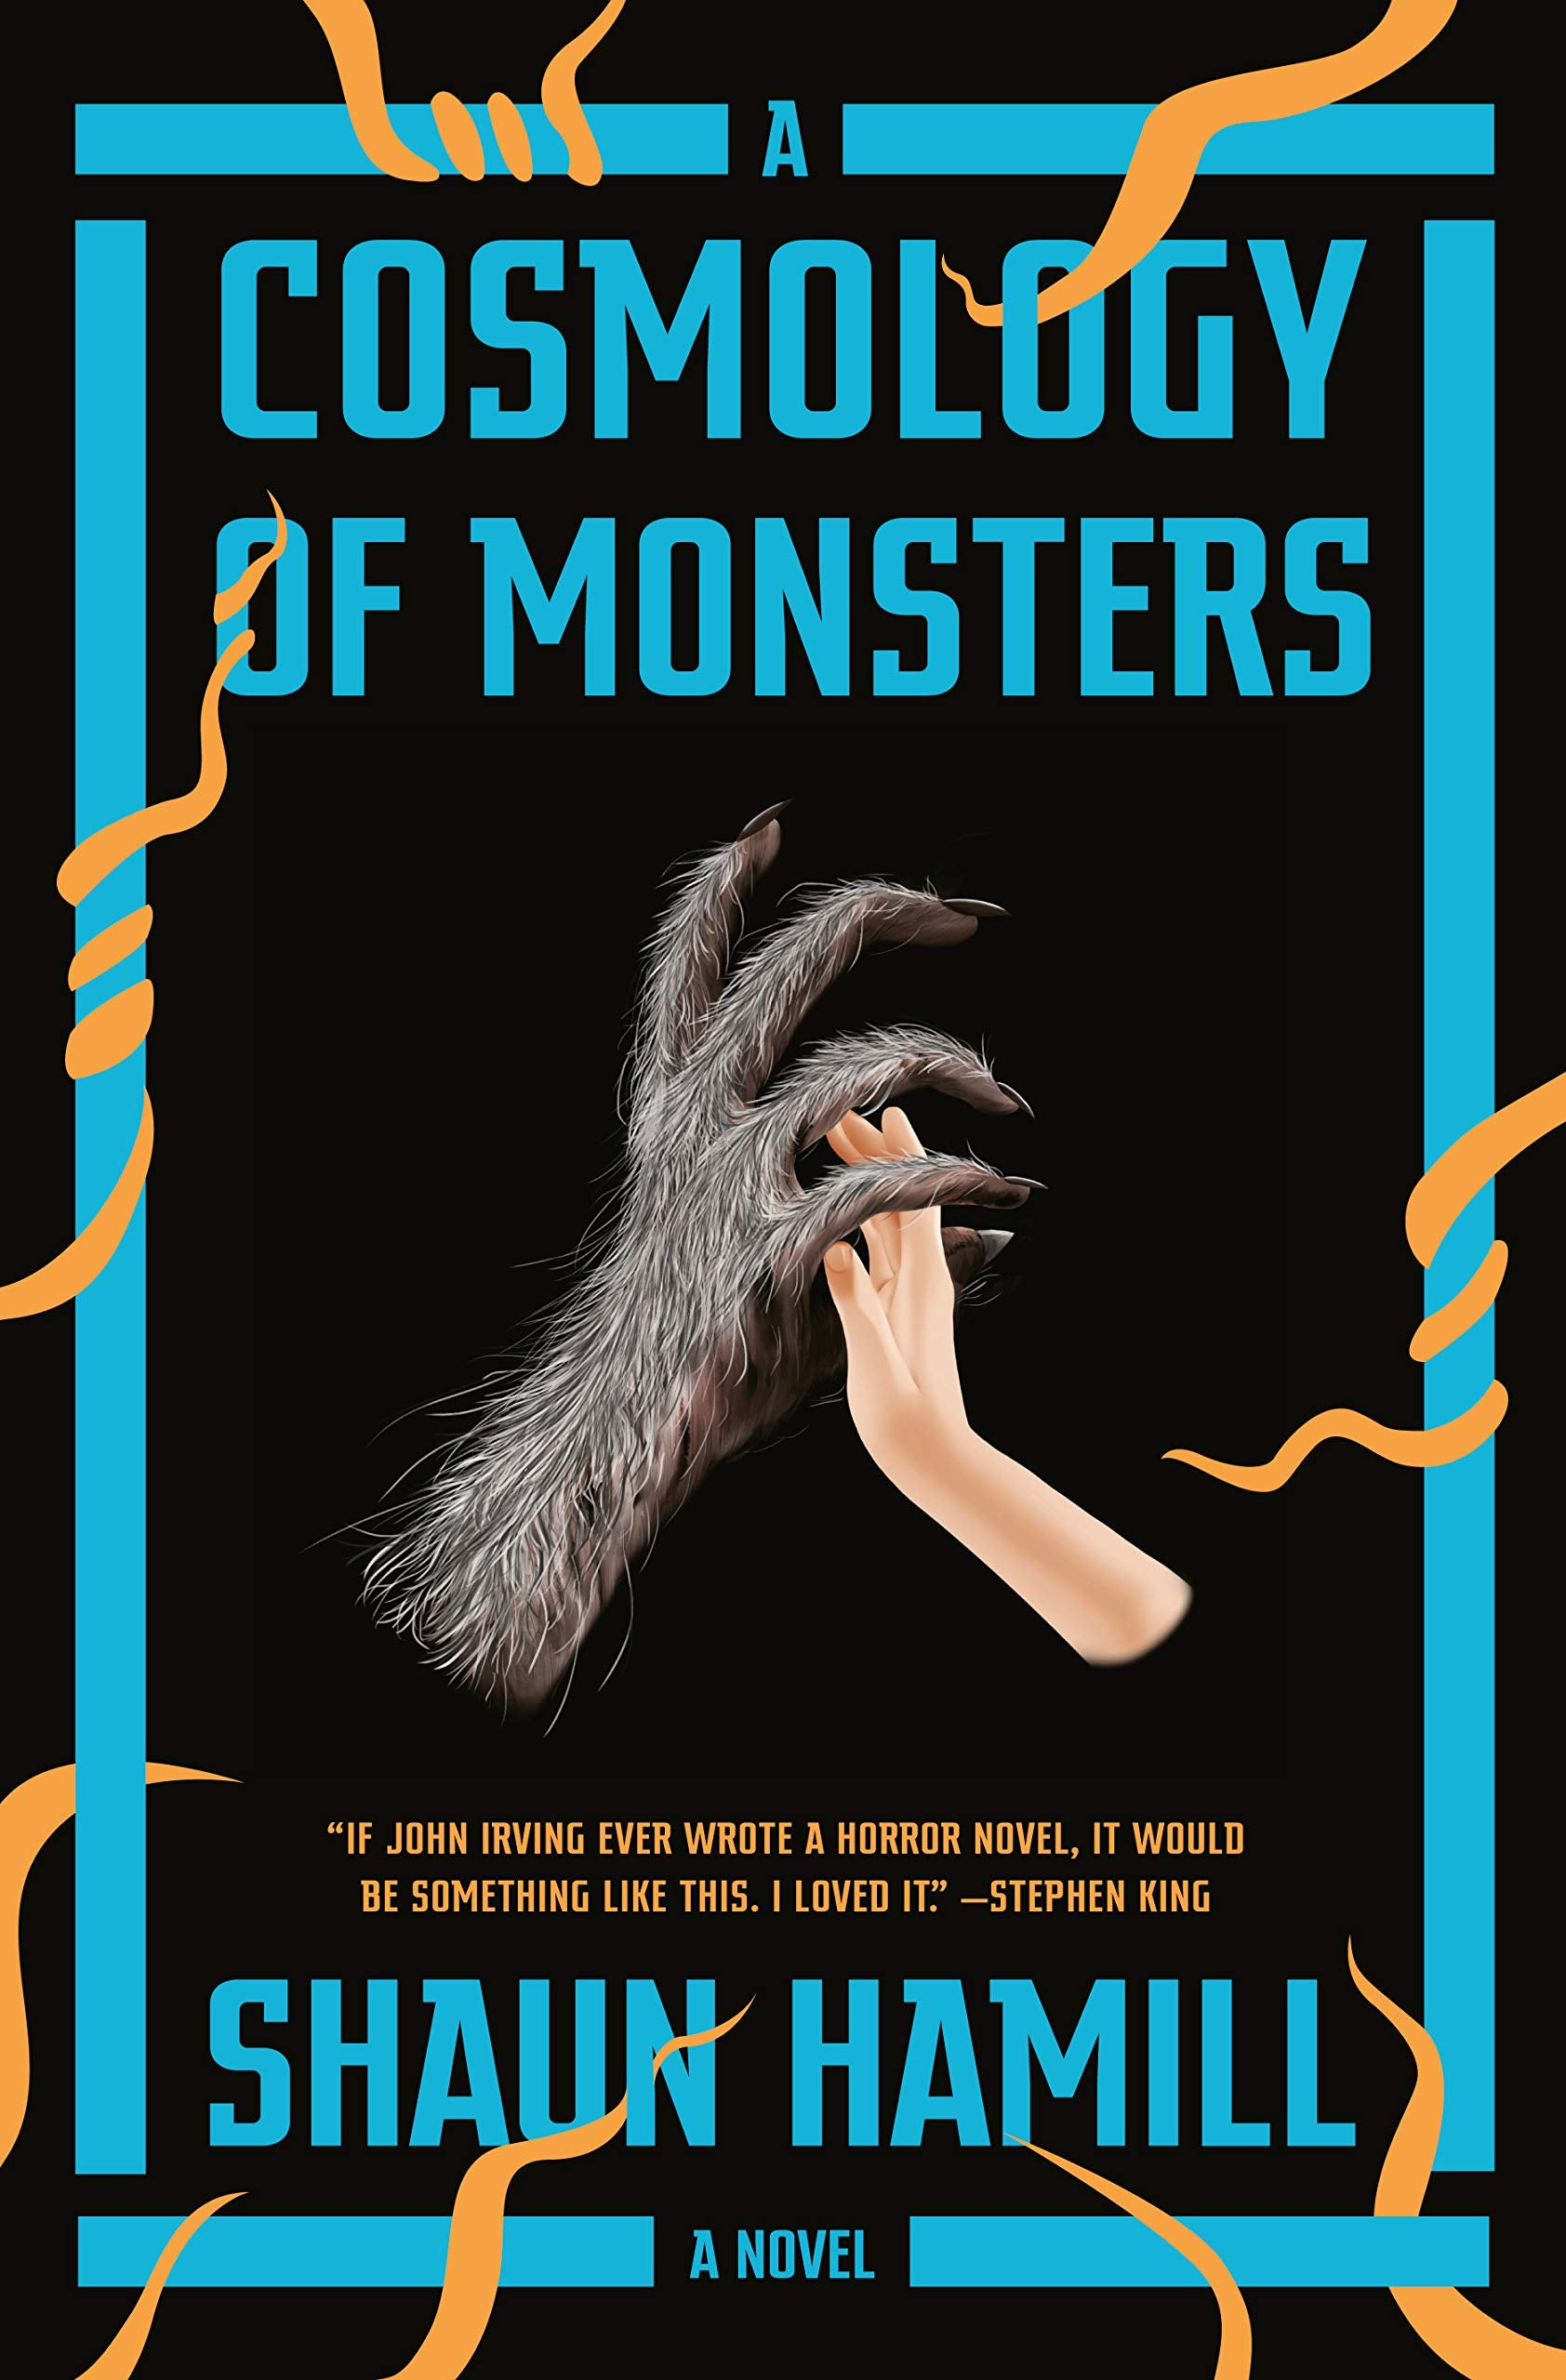 Kallie & Marcy's Side By Side Review of A COSMOLOGY OF MONSTERS by Shaun Hamill